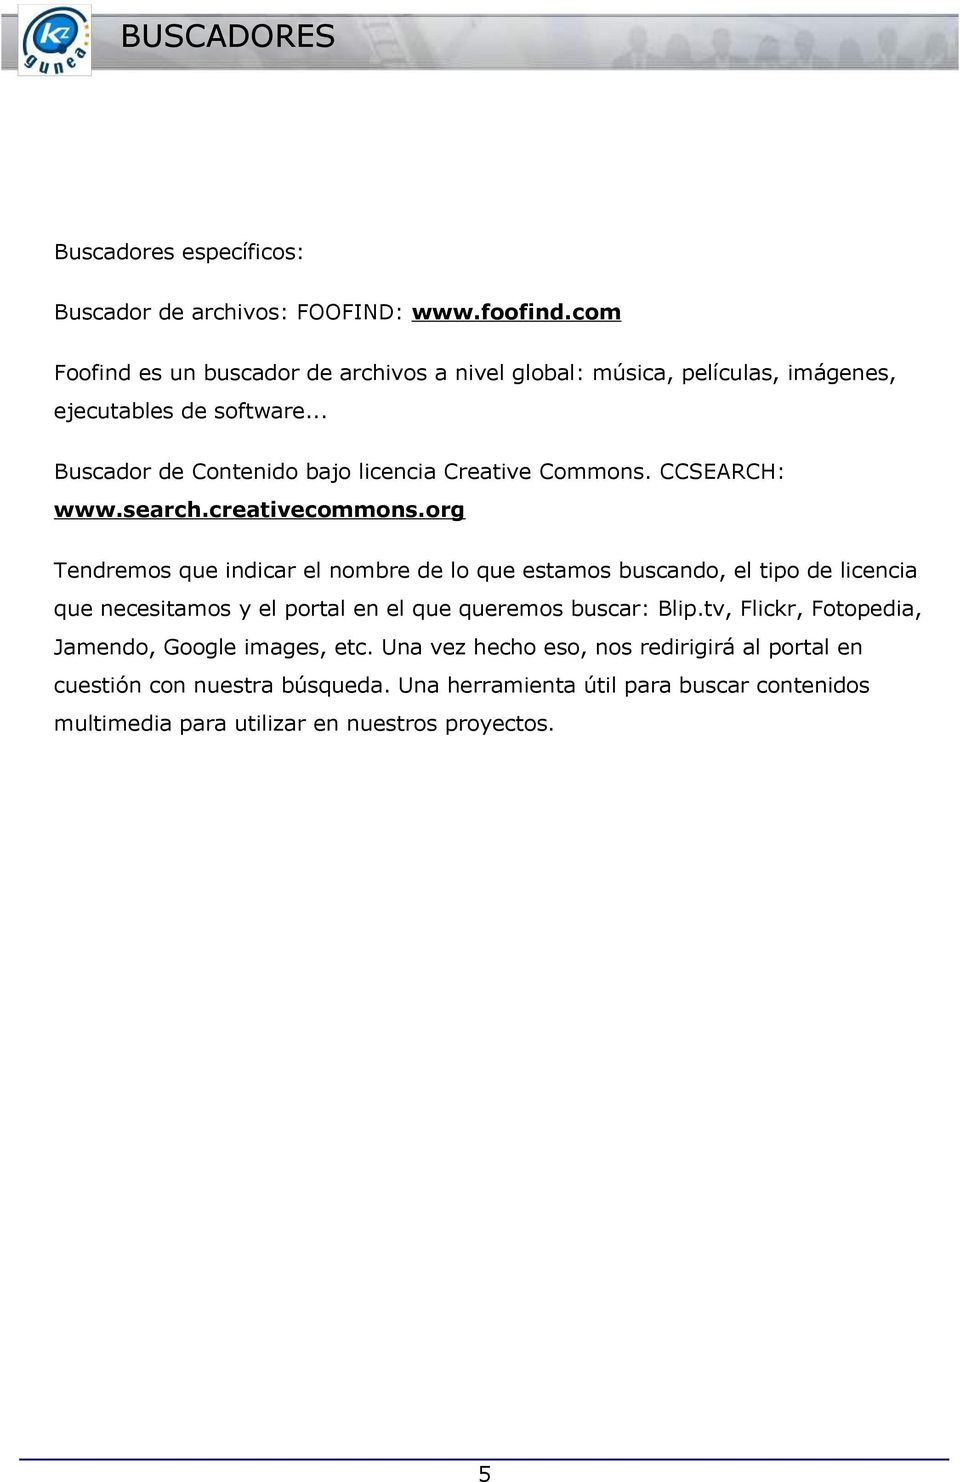 .. Buscador de Contenido bajo licencia Creative Commons. CCSEARCH: www.search.creativecommons.